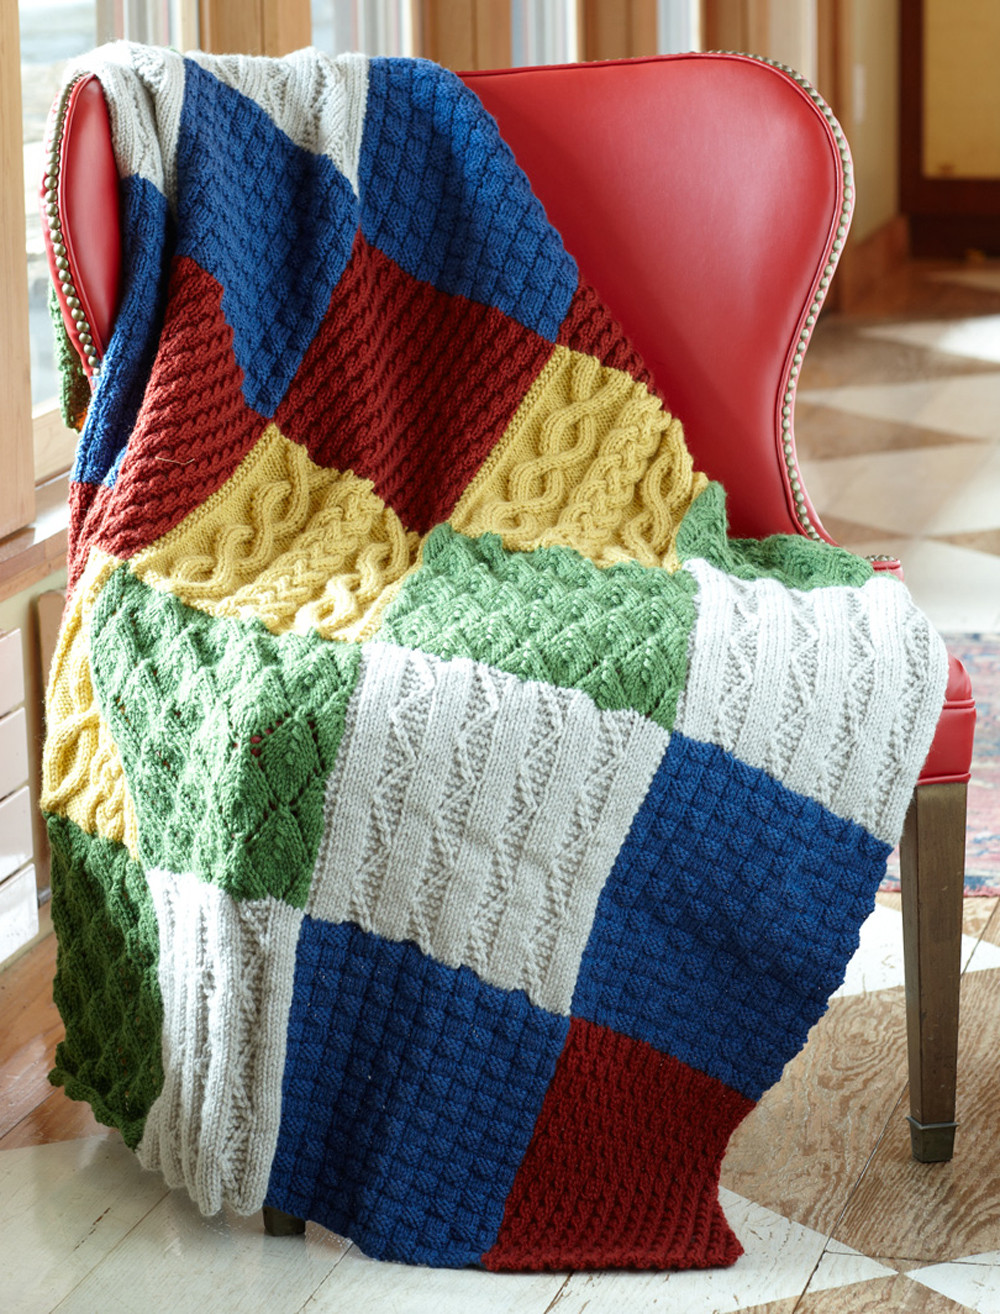 Luxury Patch Sampler Throw Free Easy Knit Afghan Patterns Of Top 40 Ideas Free Easy Knit Afghan Patterns